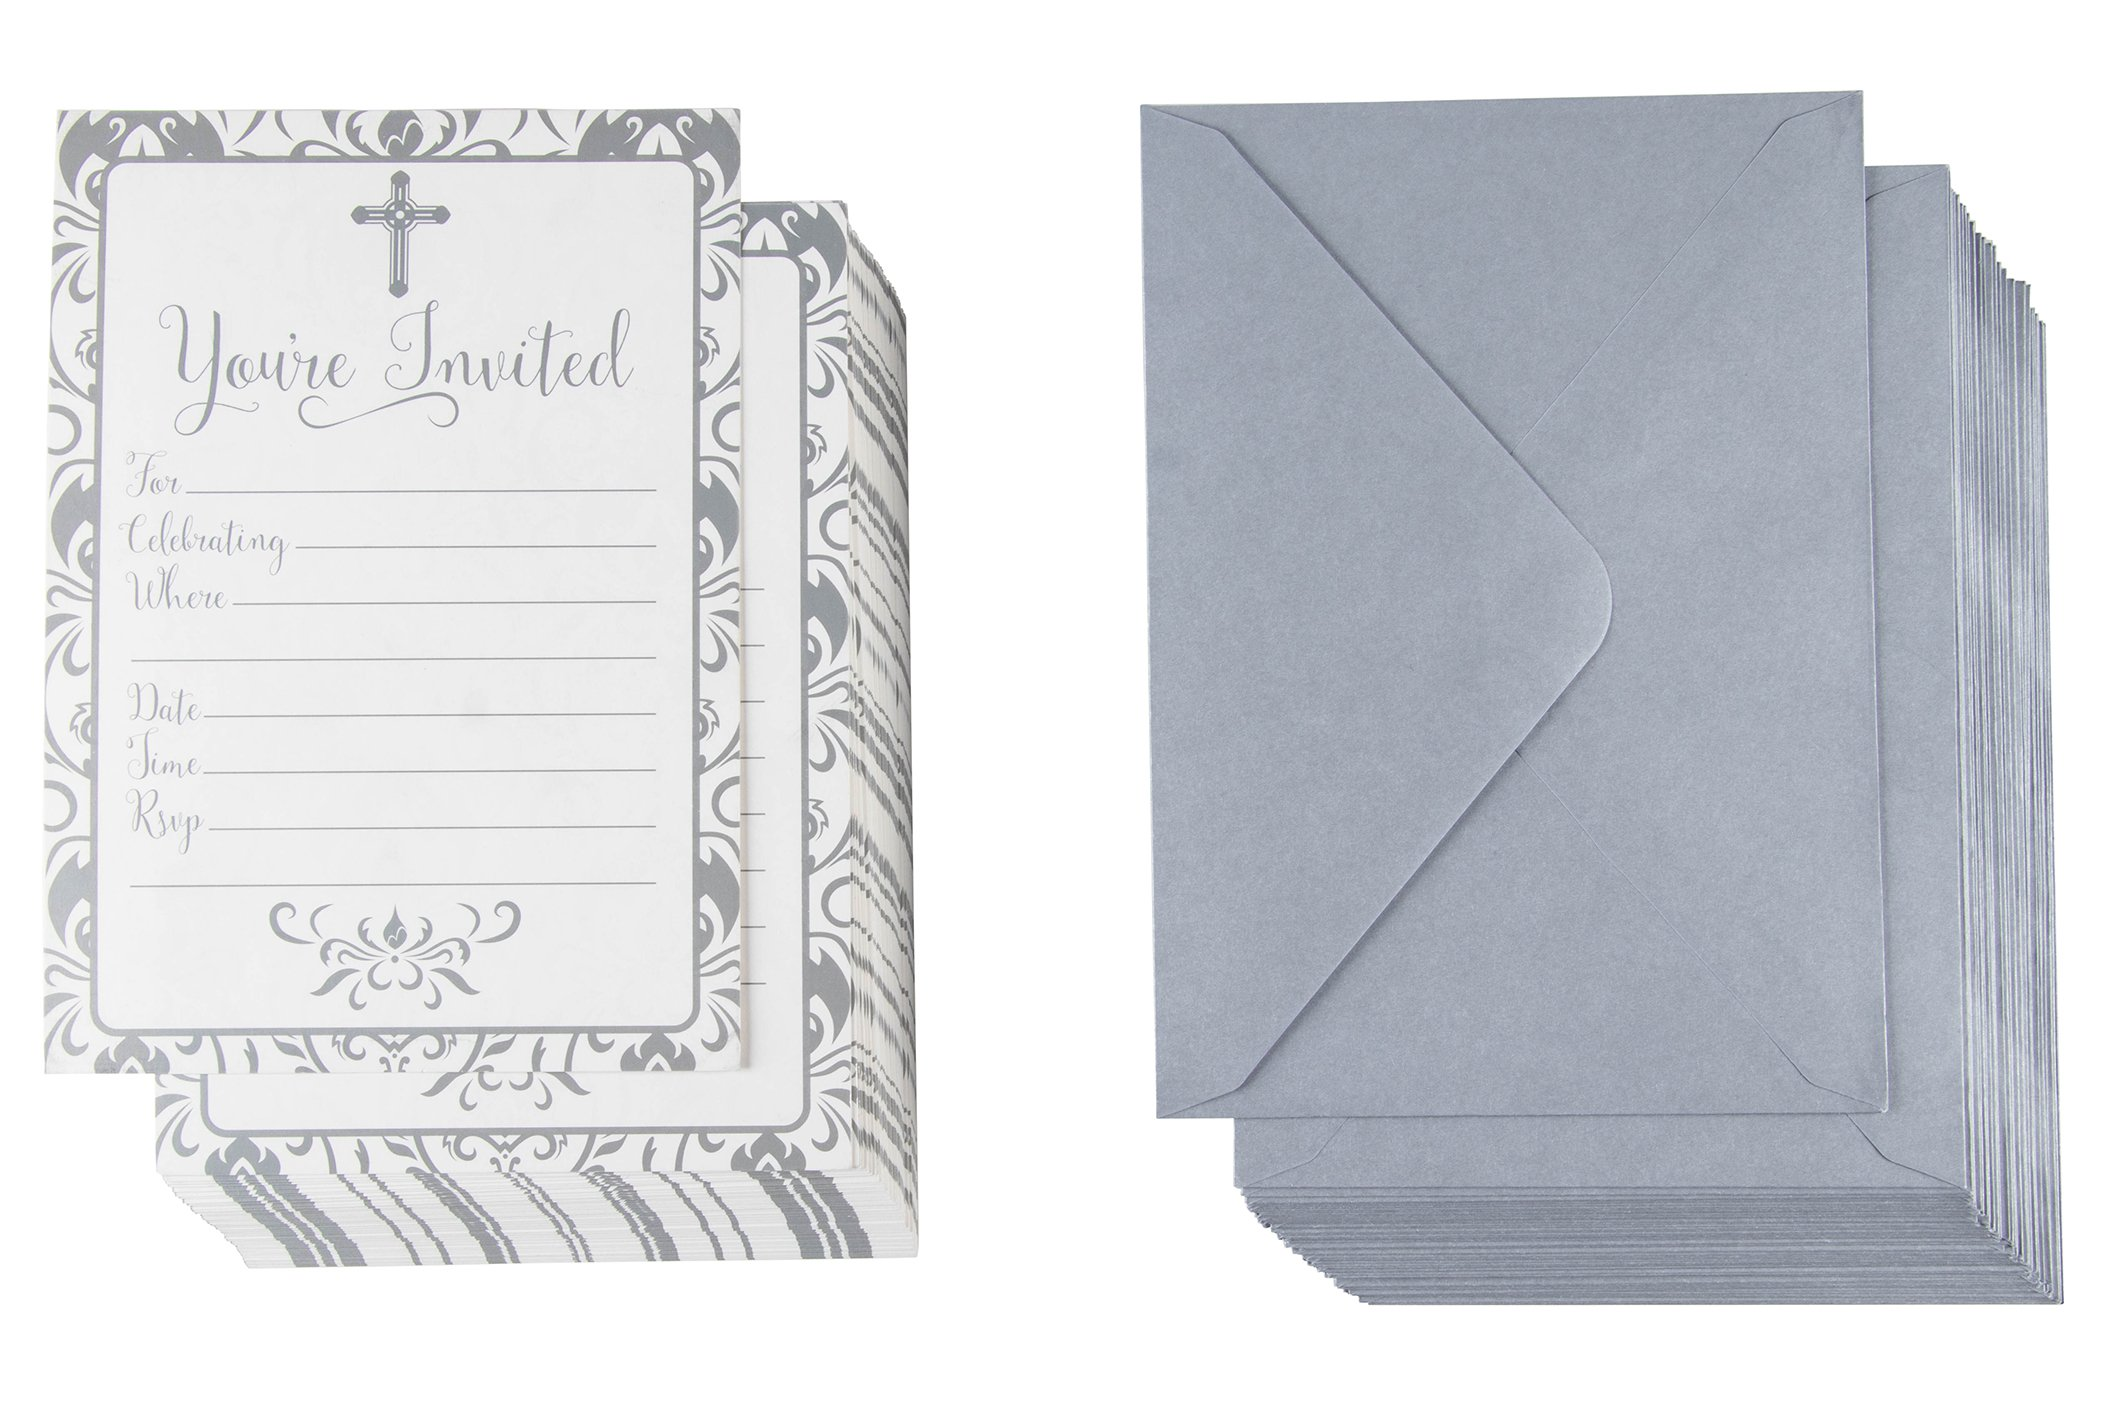 60-Pack Religious Invitations - Christian Invitation Cards, Silver Cross and Floral Pattern, Ideal for Funeral, Baptism, Christening, Church Events, V-Flap Envelopes Included, 5 x 7 inches by Best Paper Greetings